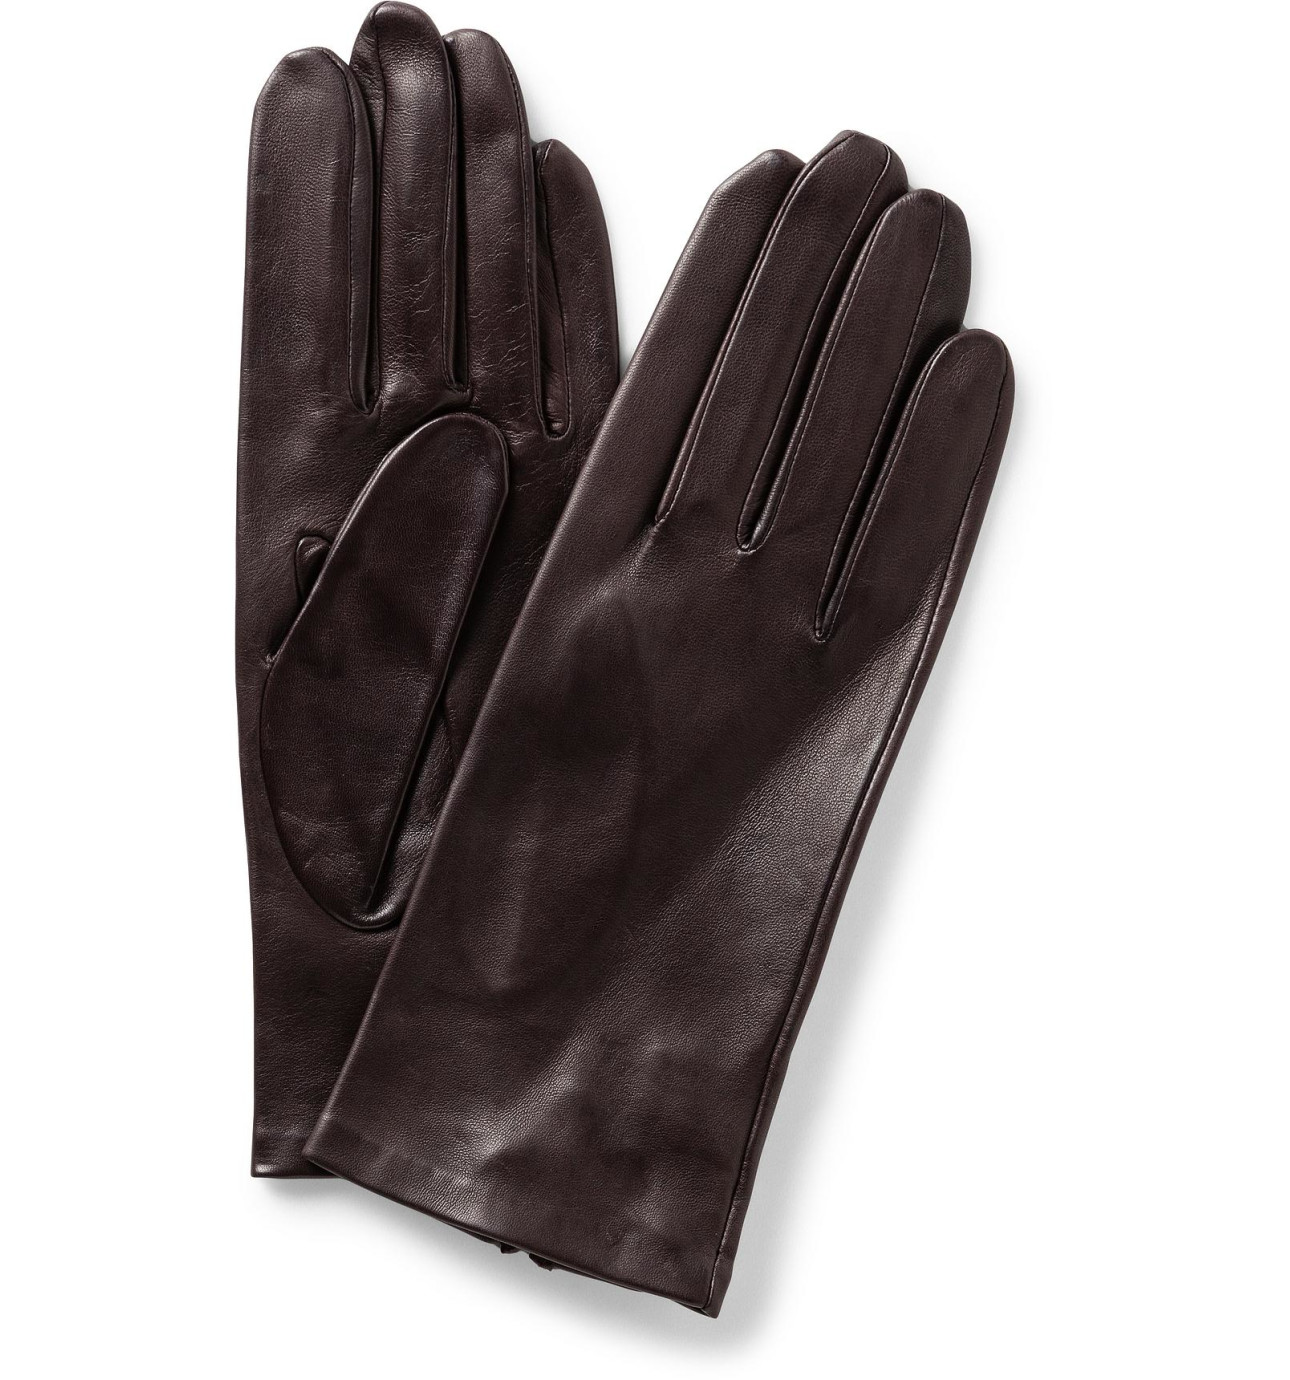 Ladies leather gloves australia - Milana Unlined Leather Glove Pt